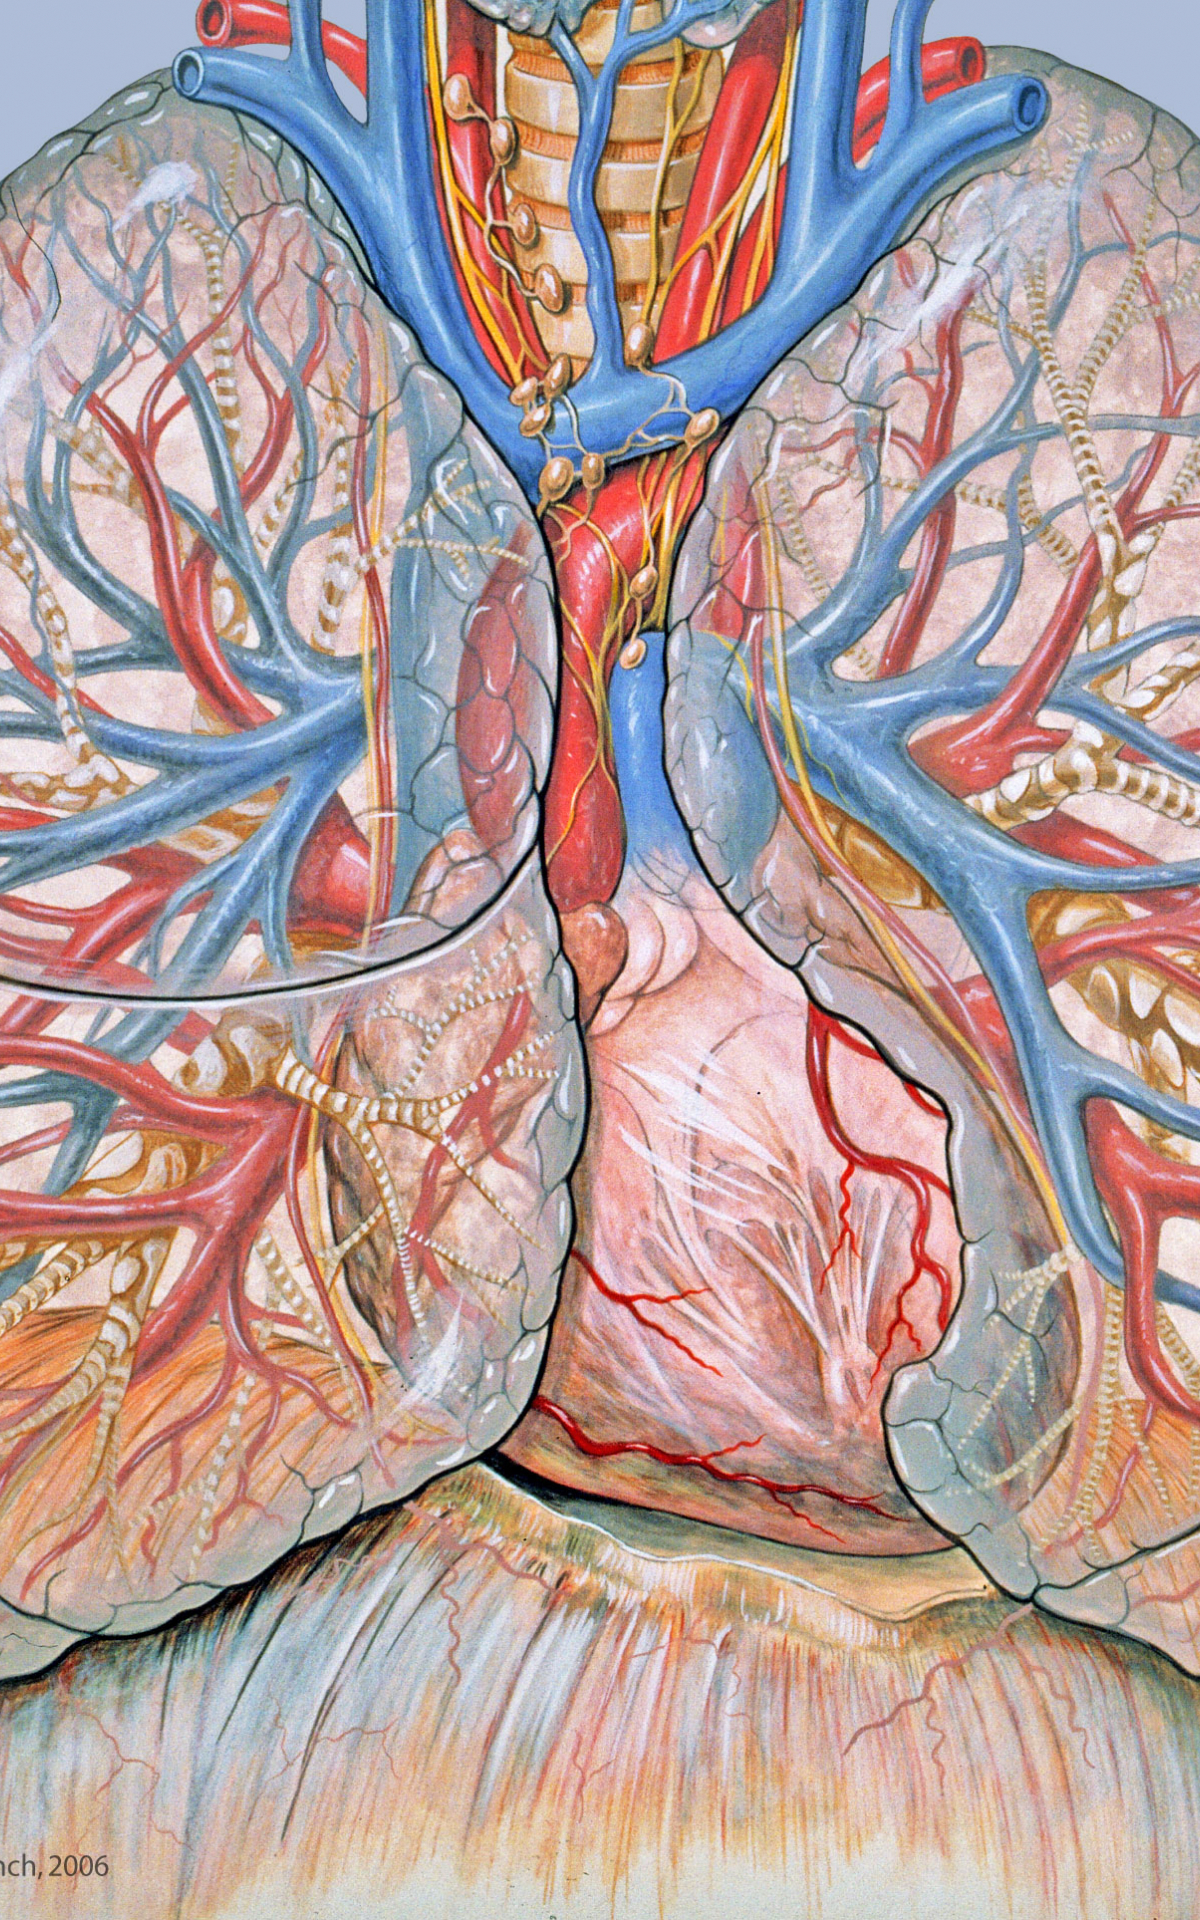 Free download are viewing anatomy lungs lung hd wallpaper ...